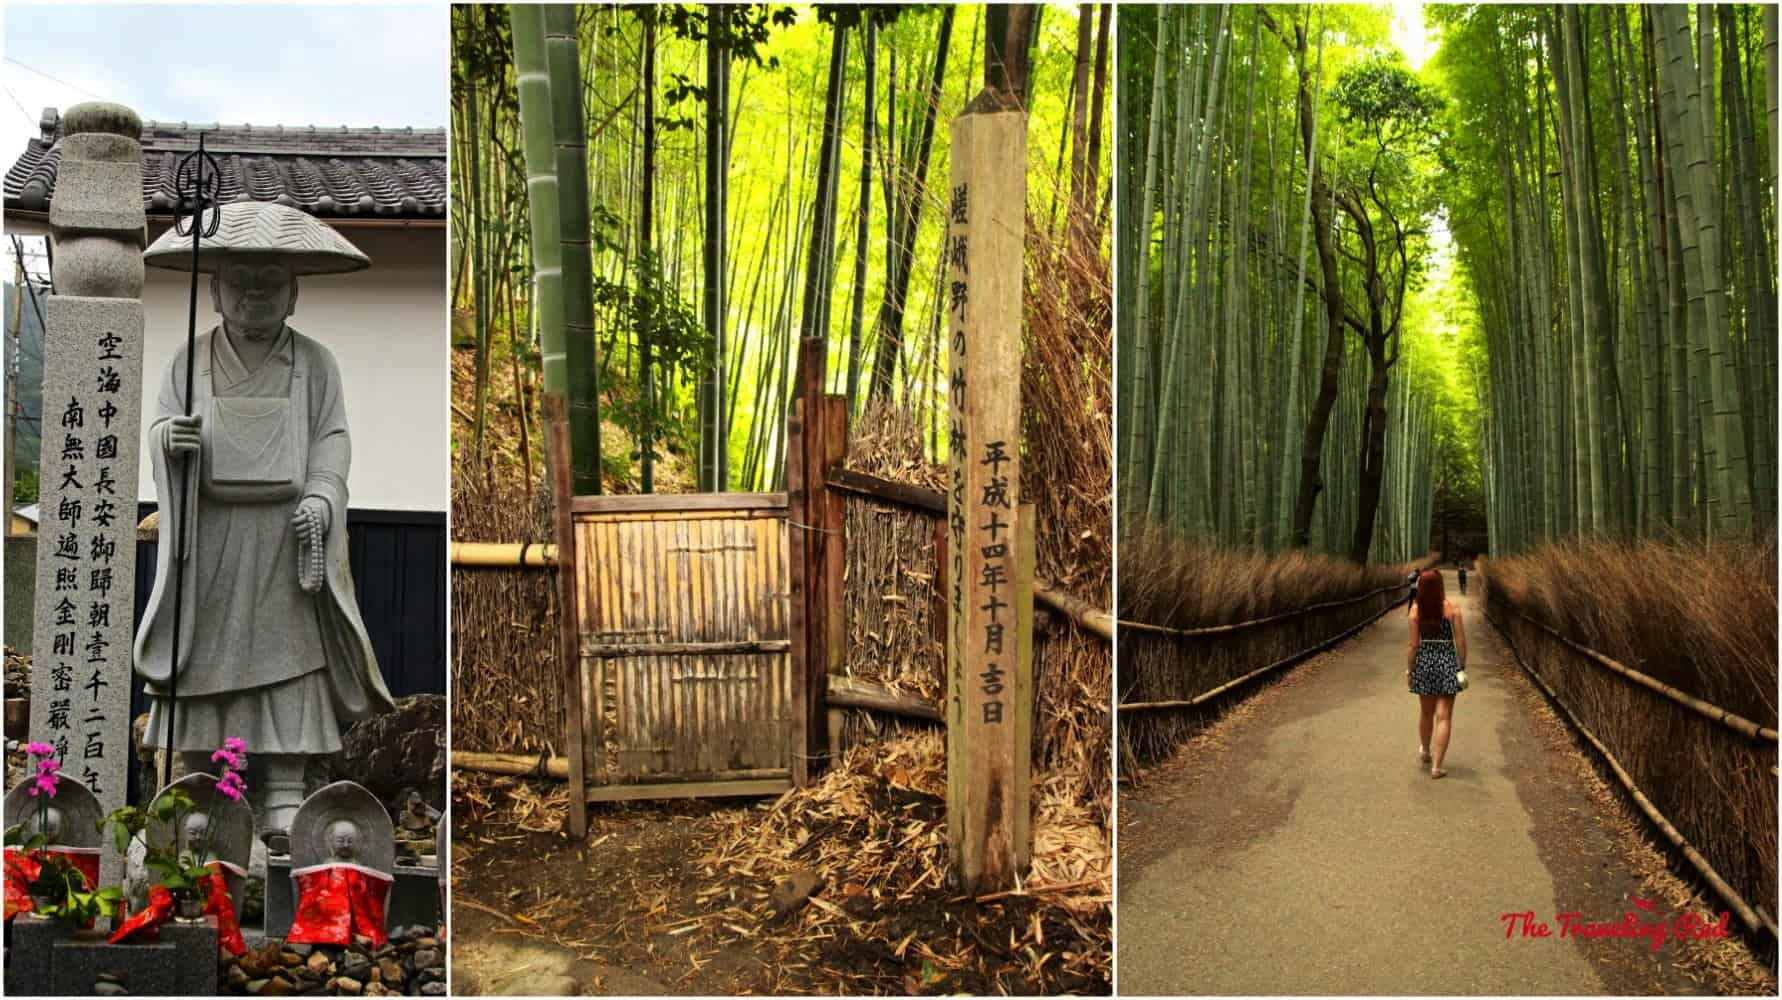 You must see Arashiyama Bamboo Grove when you visit Japan.Make sure to go early to avoid the crowds. The bamboo forestwas incredible. They say that those trees can grow up to 3 feet per day!